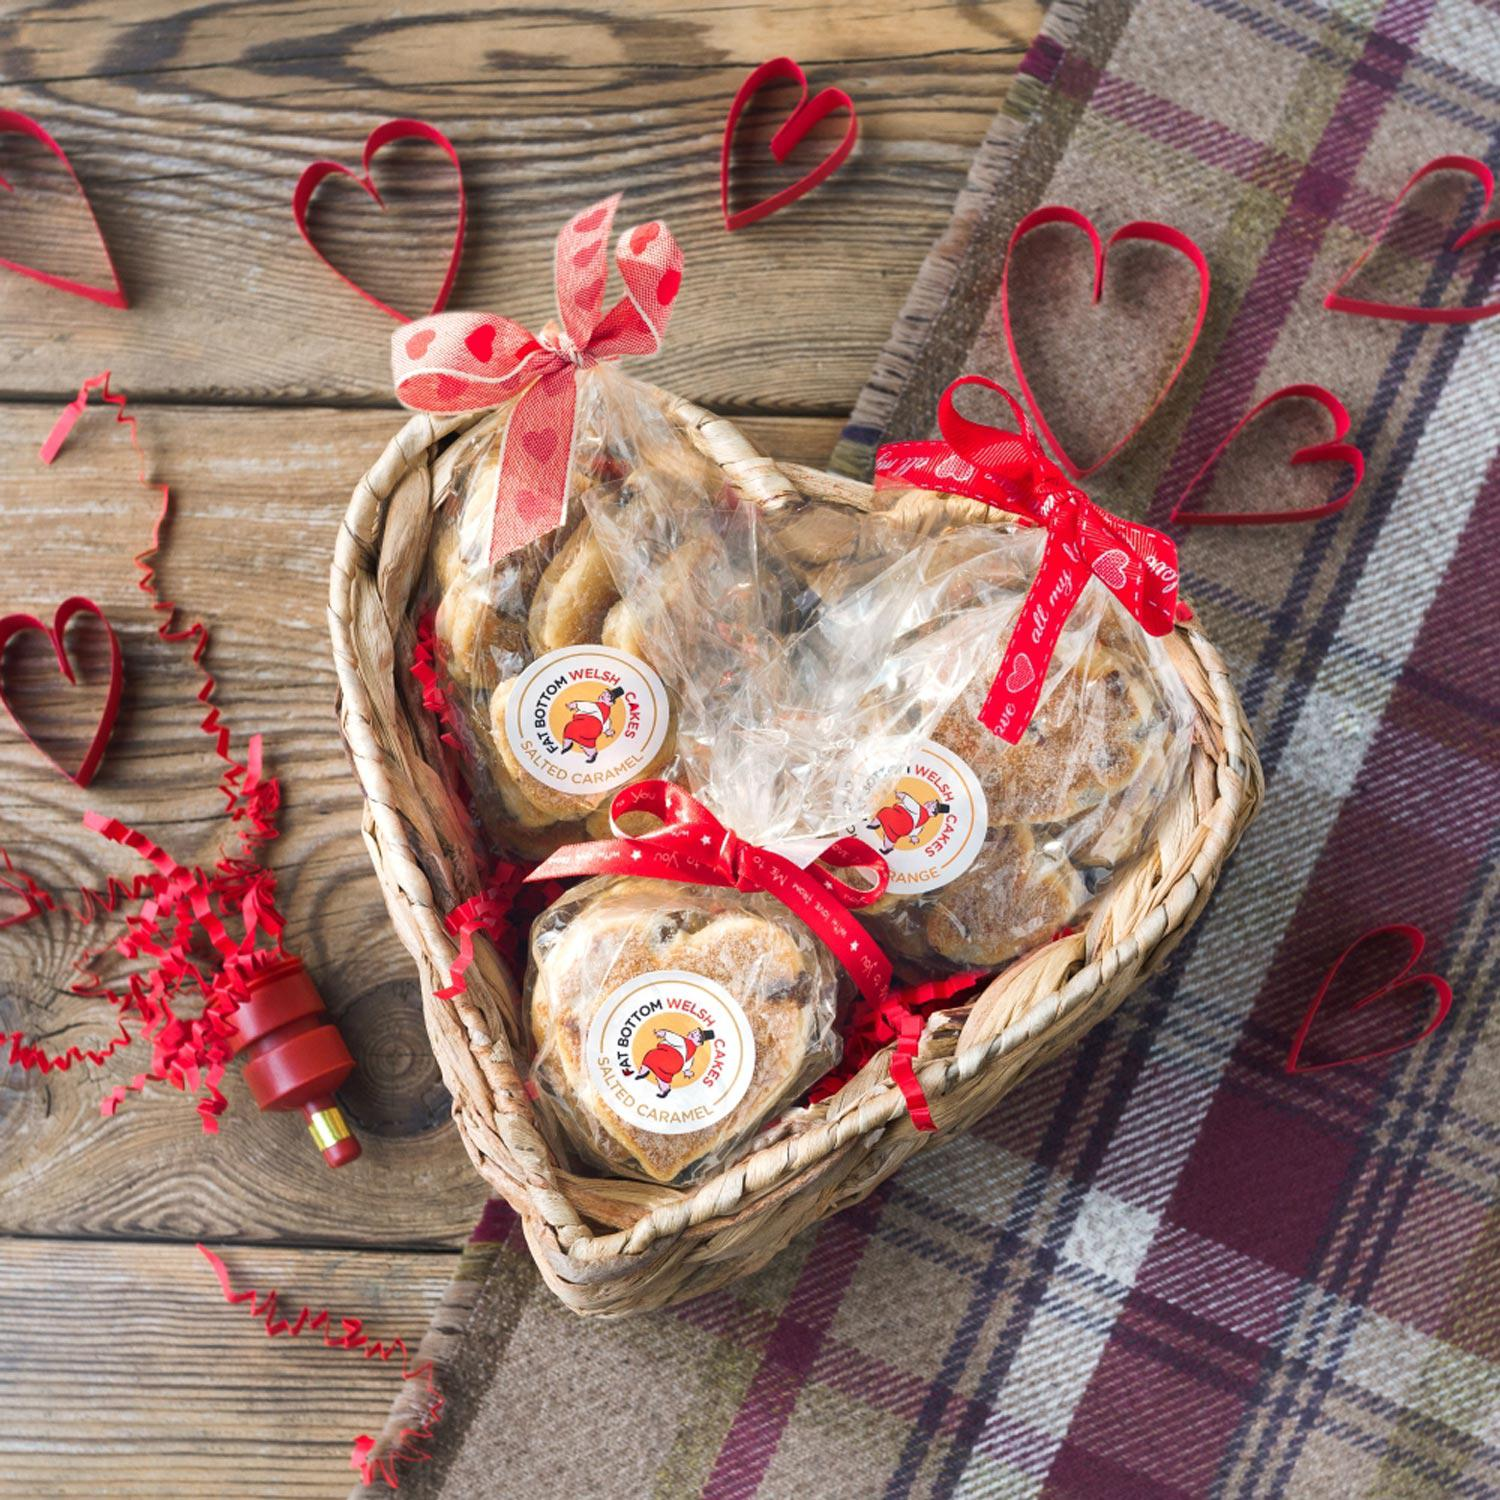 Heart Hamper - Fat Bottom - Welsh Cake Hearts - 1st Class Postage Included